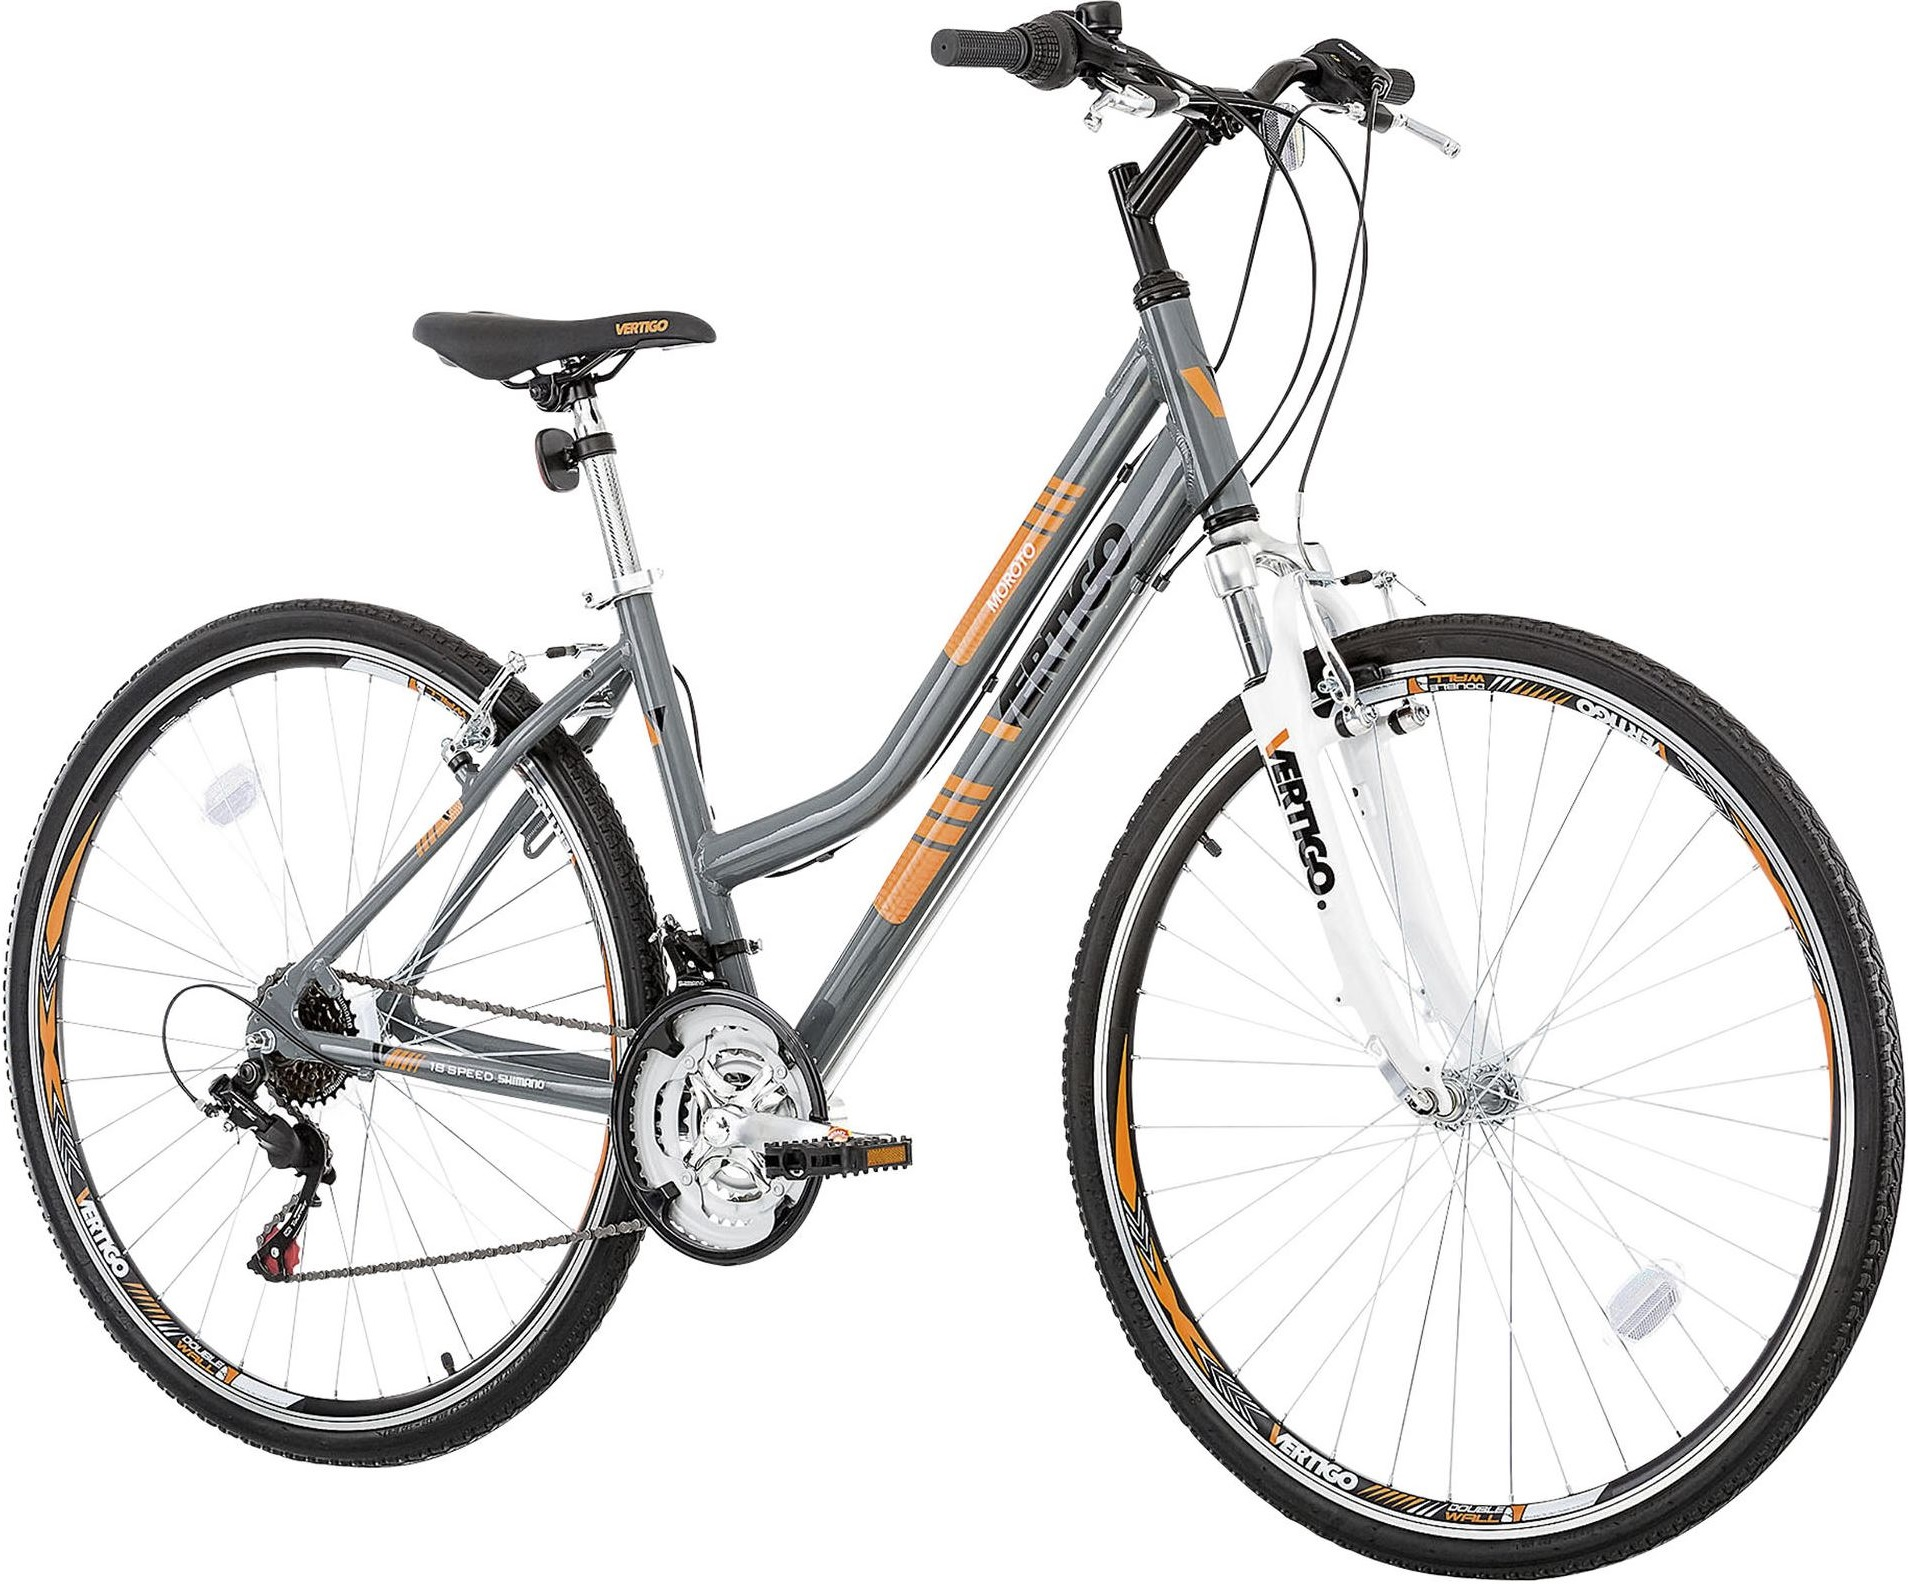 new vertigo moroto ladies front suspension hybrid bike 18 speed 700c 17 28 ebay. Black Bedroom Furniture Sets. Home Design Ideas